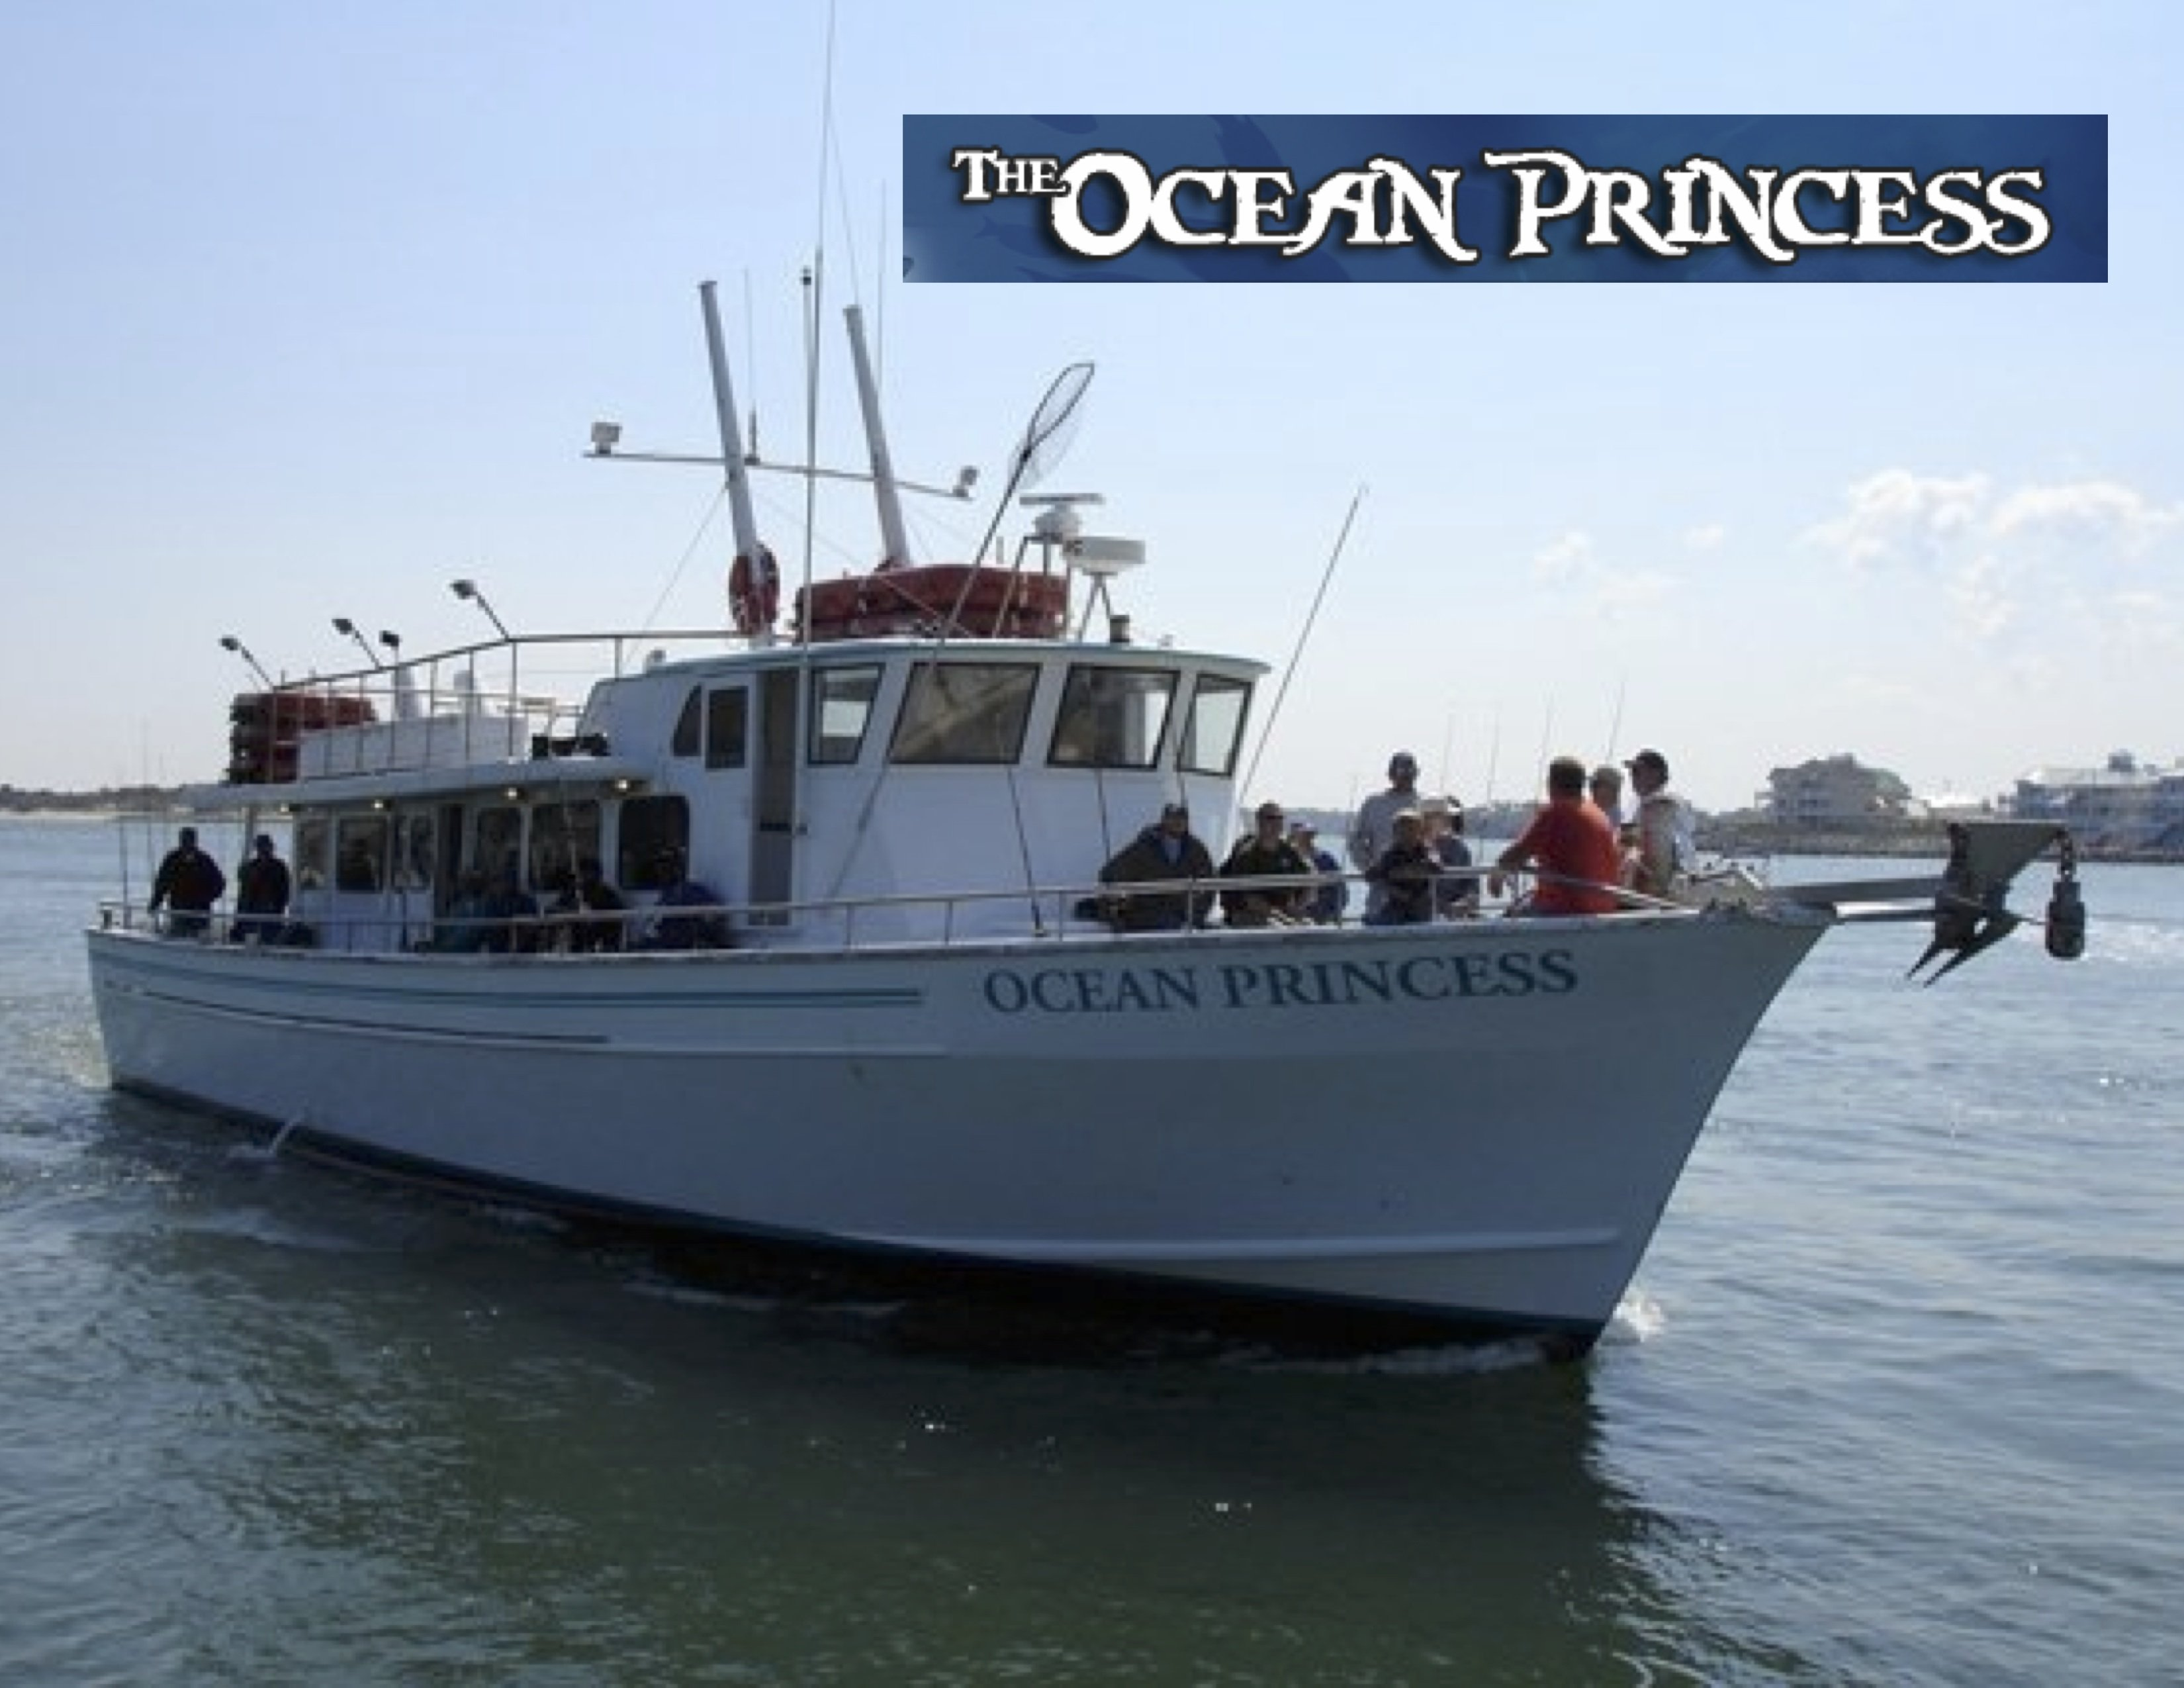 The Ocean Princess